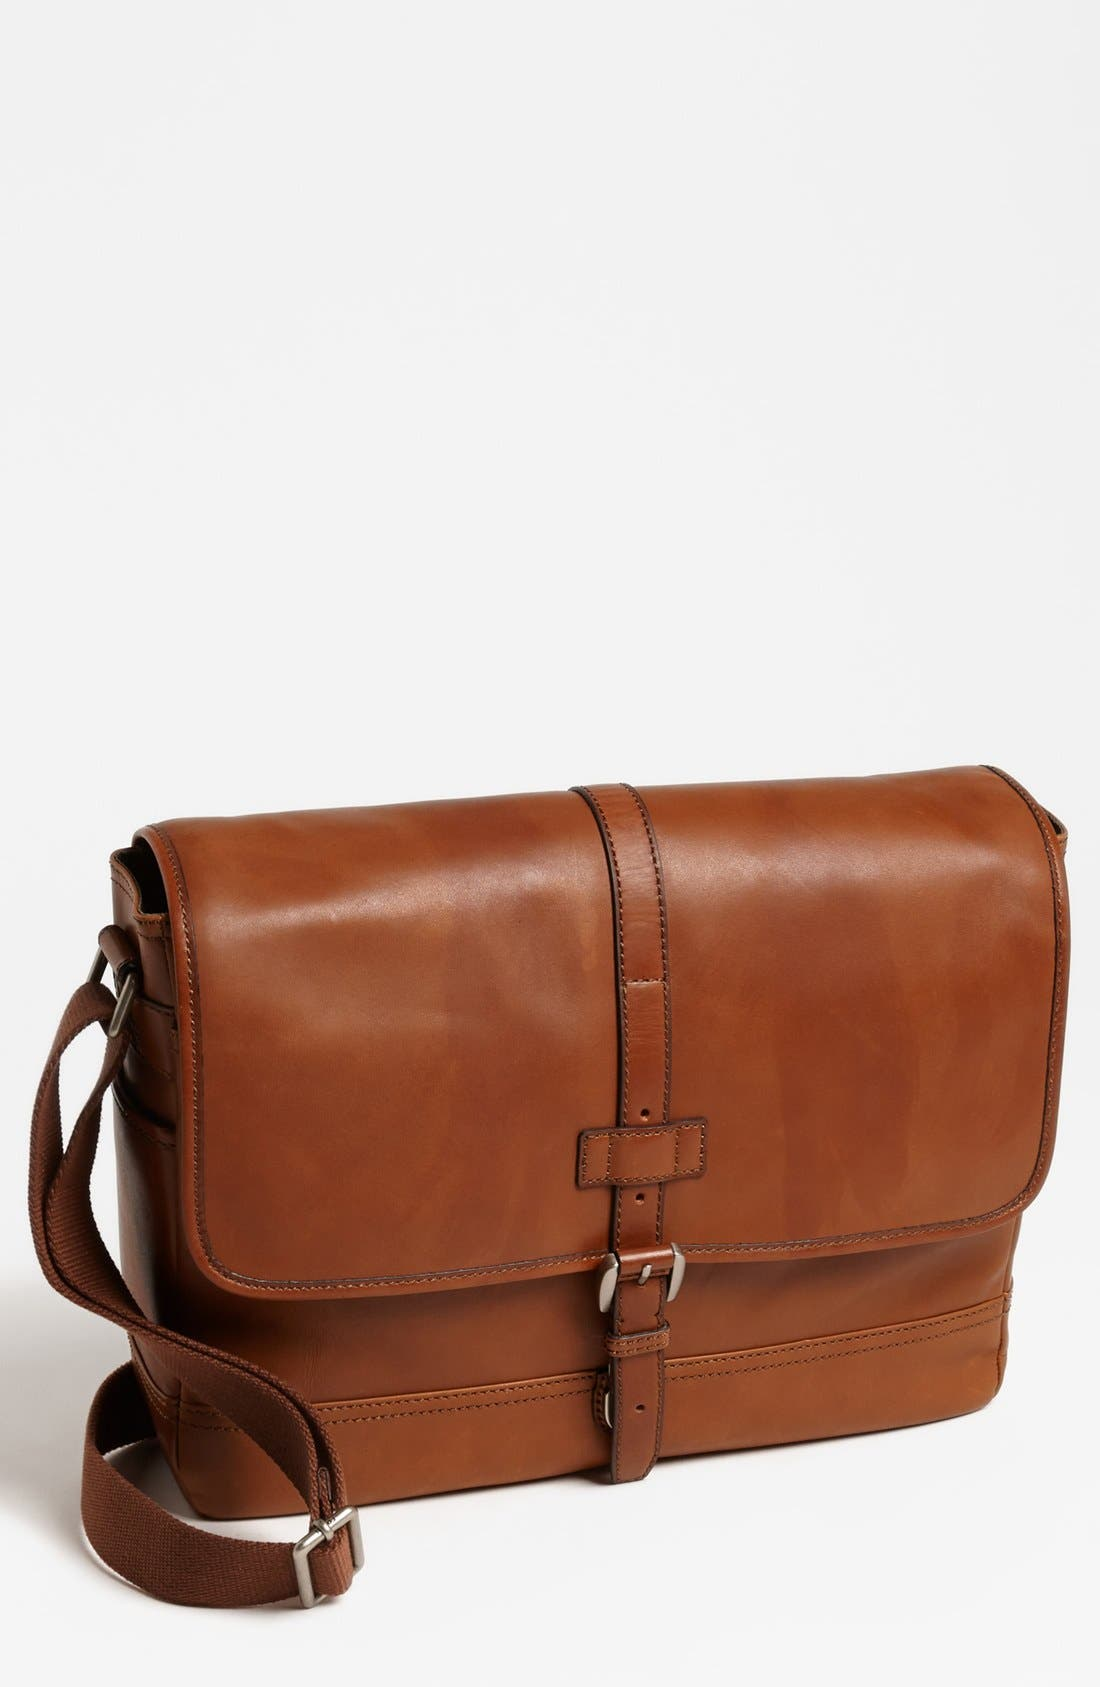 Main Image - Fossil 'Emerson' Messenger Bag